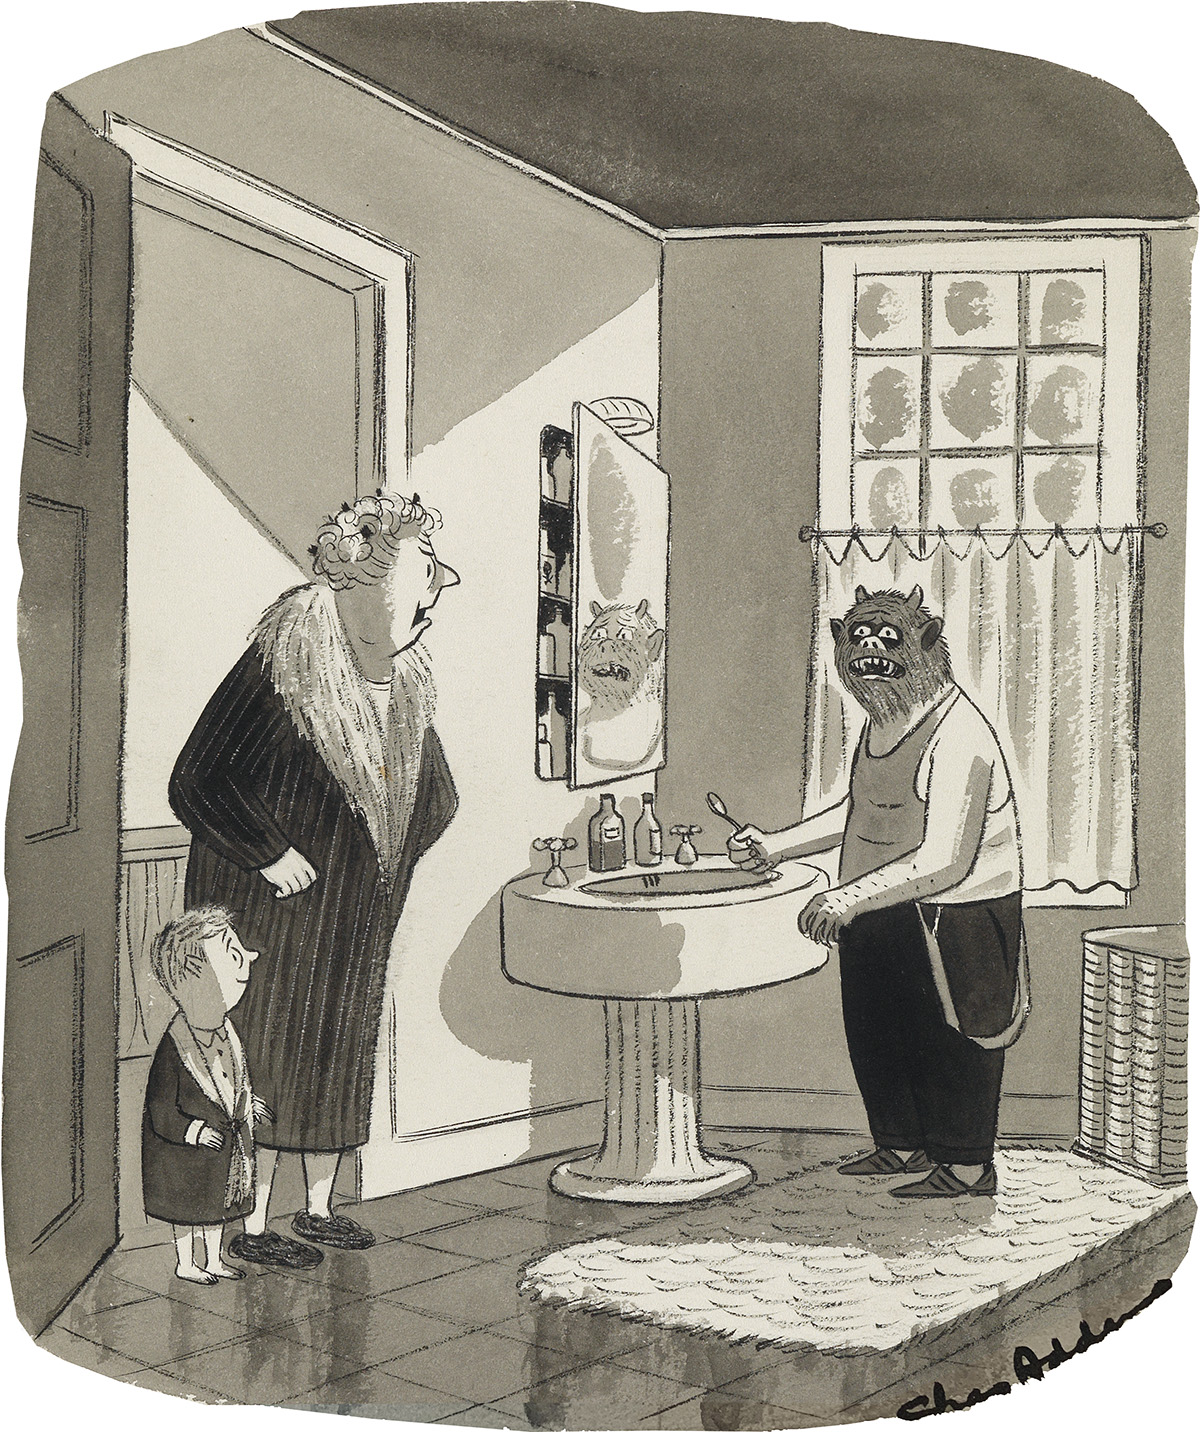 CHARLES ADDAMS. (CARTOON) How many times have I told you -- always read the labels.